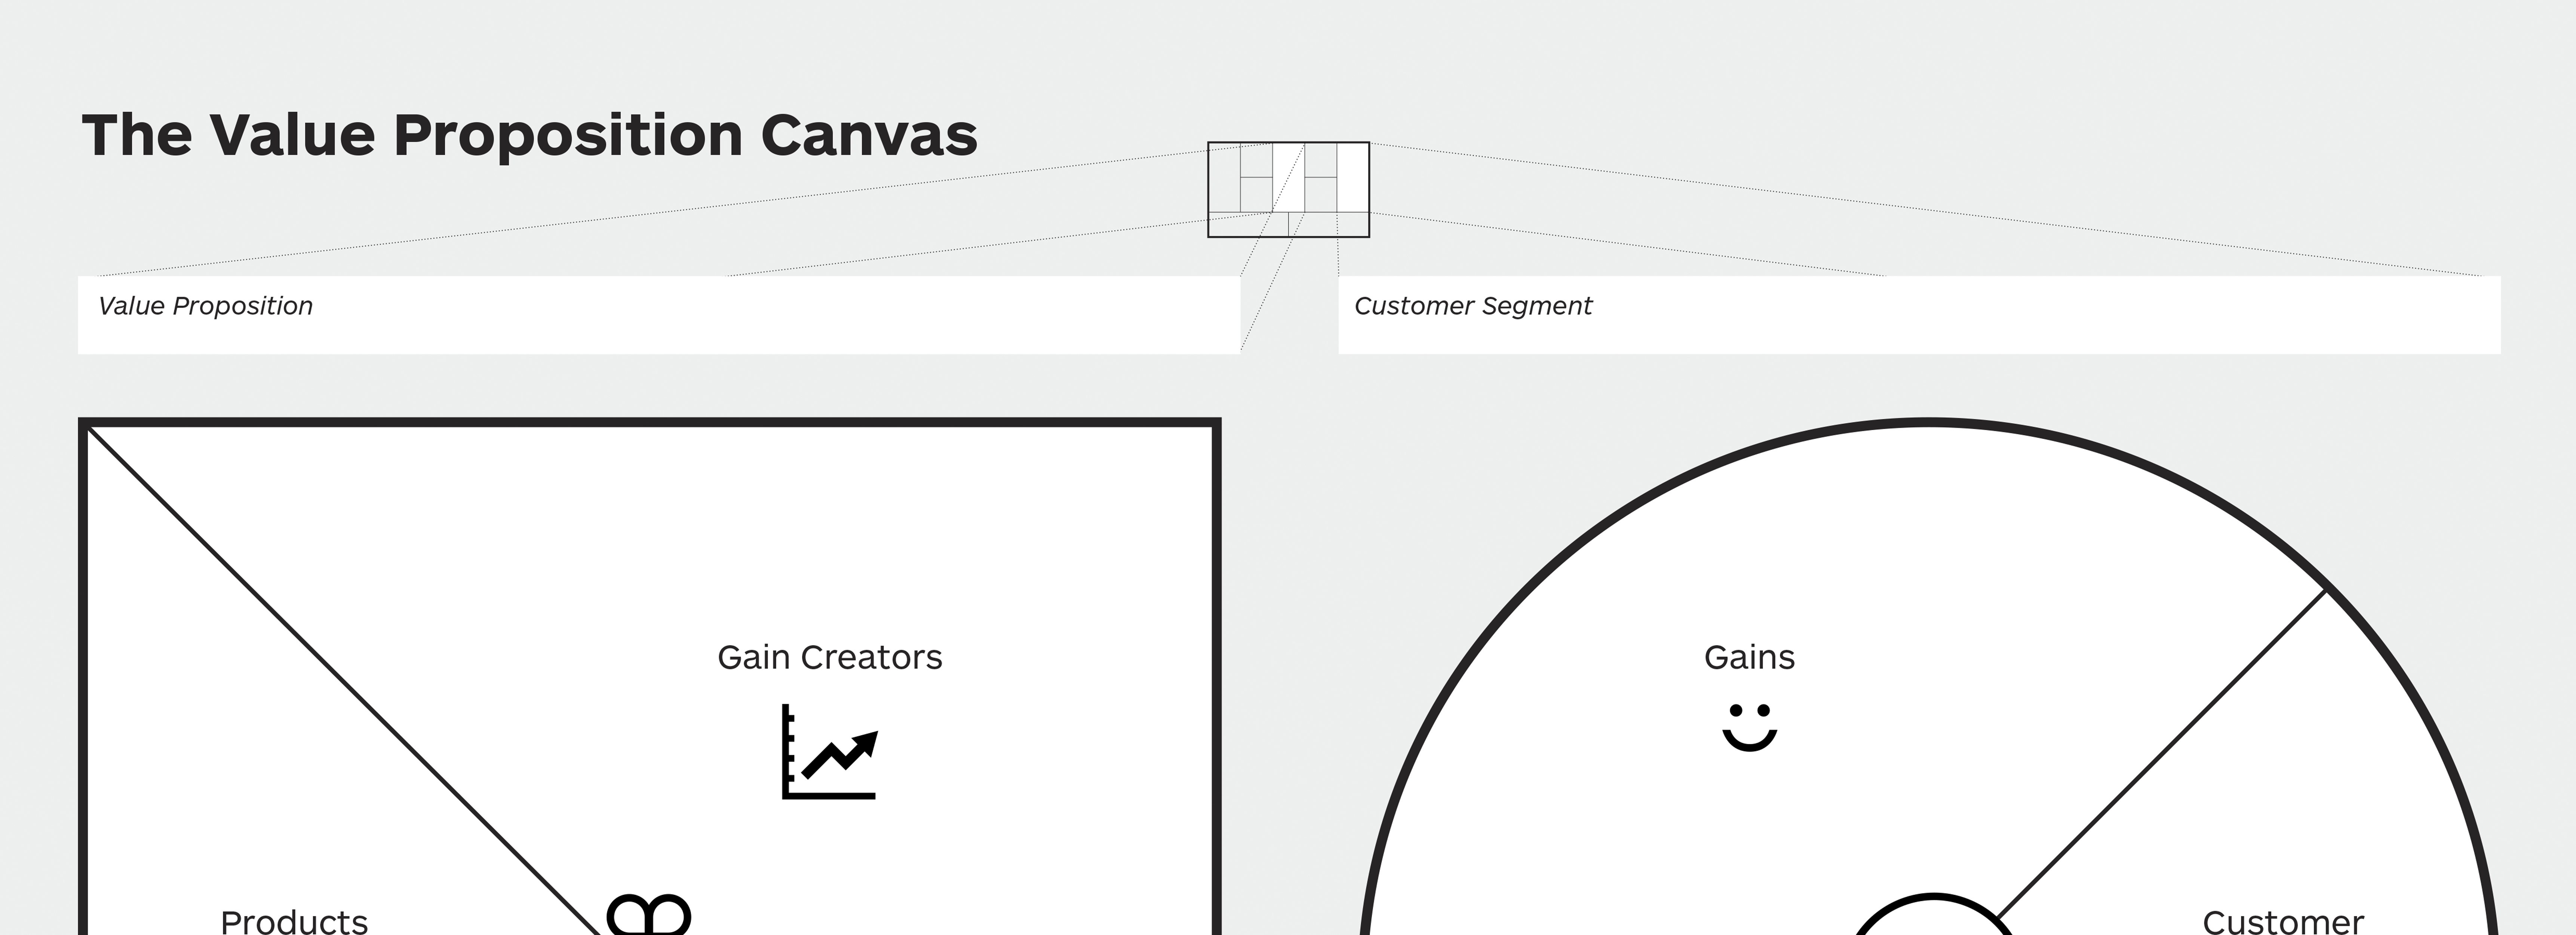 Value Proposition Canvas - Download the Official Template